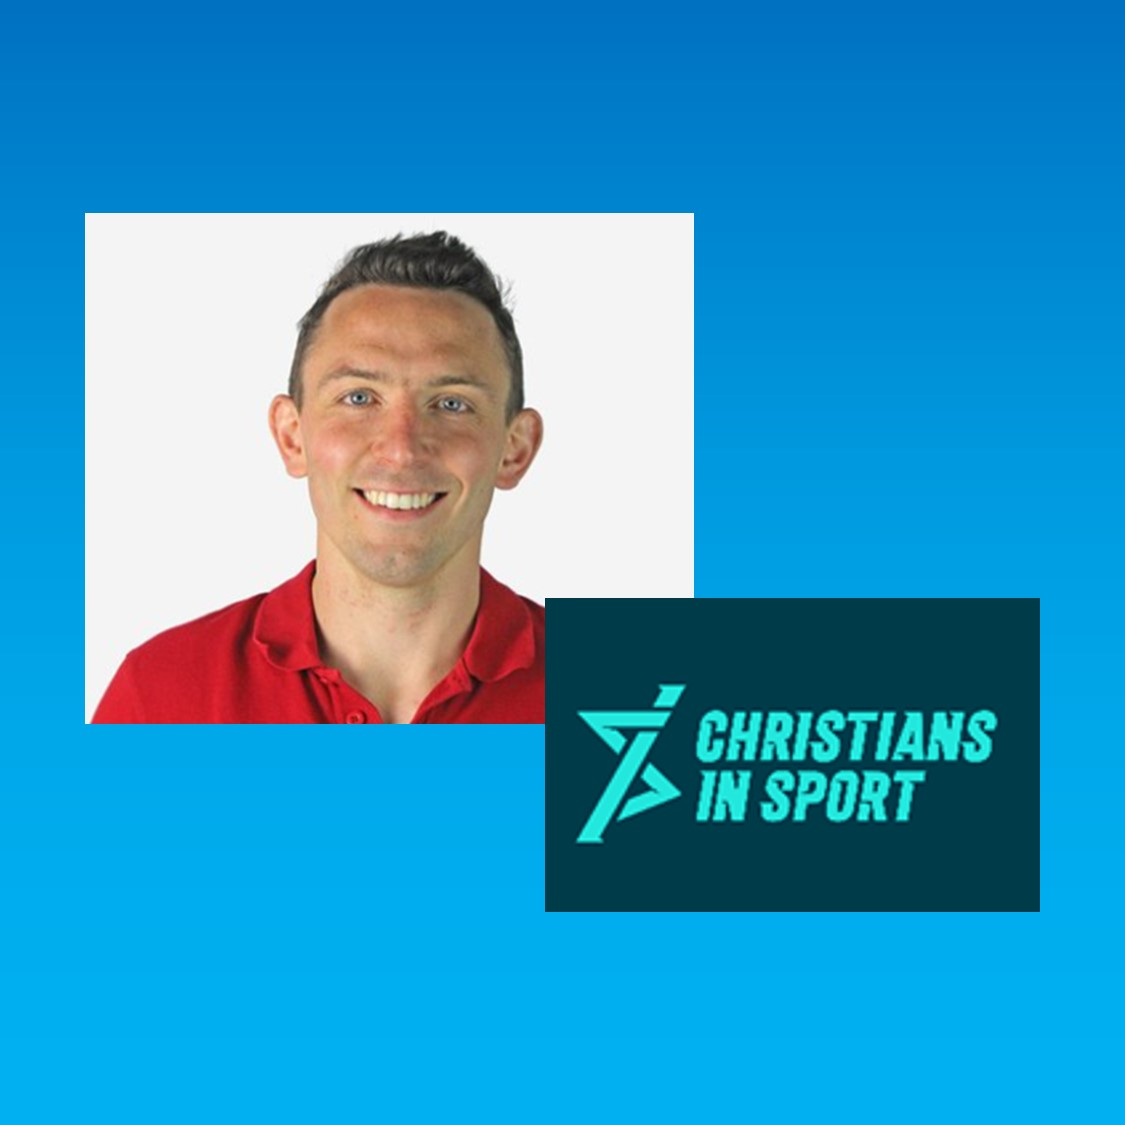 *Christians in Sport*Mike Harris is the SW regional staff worker for Christians in Sport (CIS). He works to reach the world of sport for Jesus working with young people, students, adults and elite athletes by equipping Christian sportspeople to live and speak out for Jesus in their unis and sport clubs. He also speaks at guest events for sportspeople who aren't yet Christians and helps run summer sports camps for 12-17s. CIS is a UK based charity providing resources especially designed for Christians active in competitive sport.  Find out more at christiansinsport.org.uk  or contact Sheila Harris sheila@webharris.co.uk